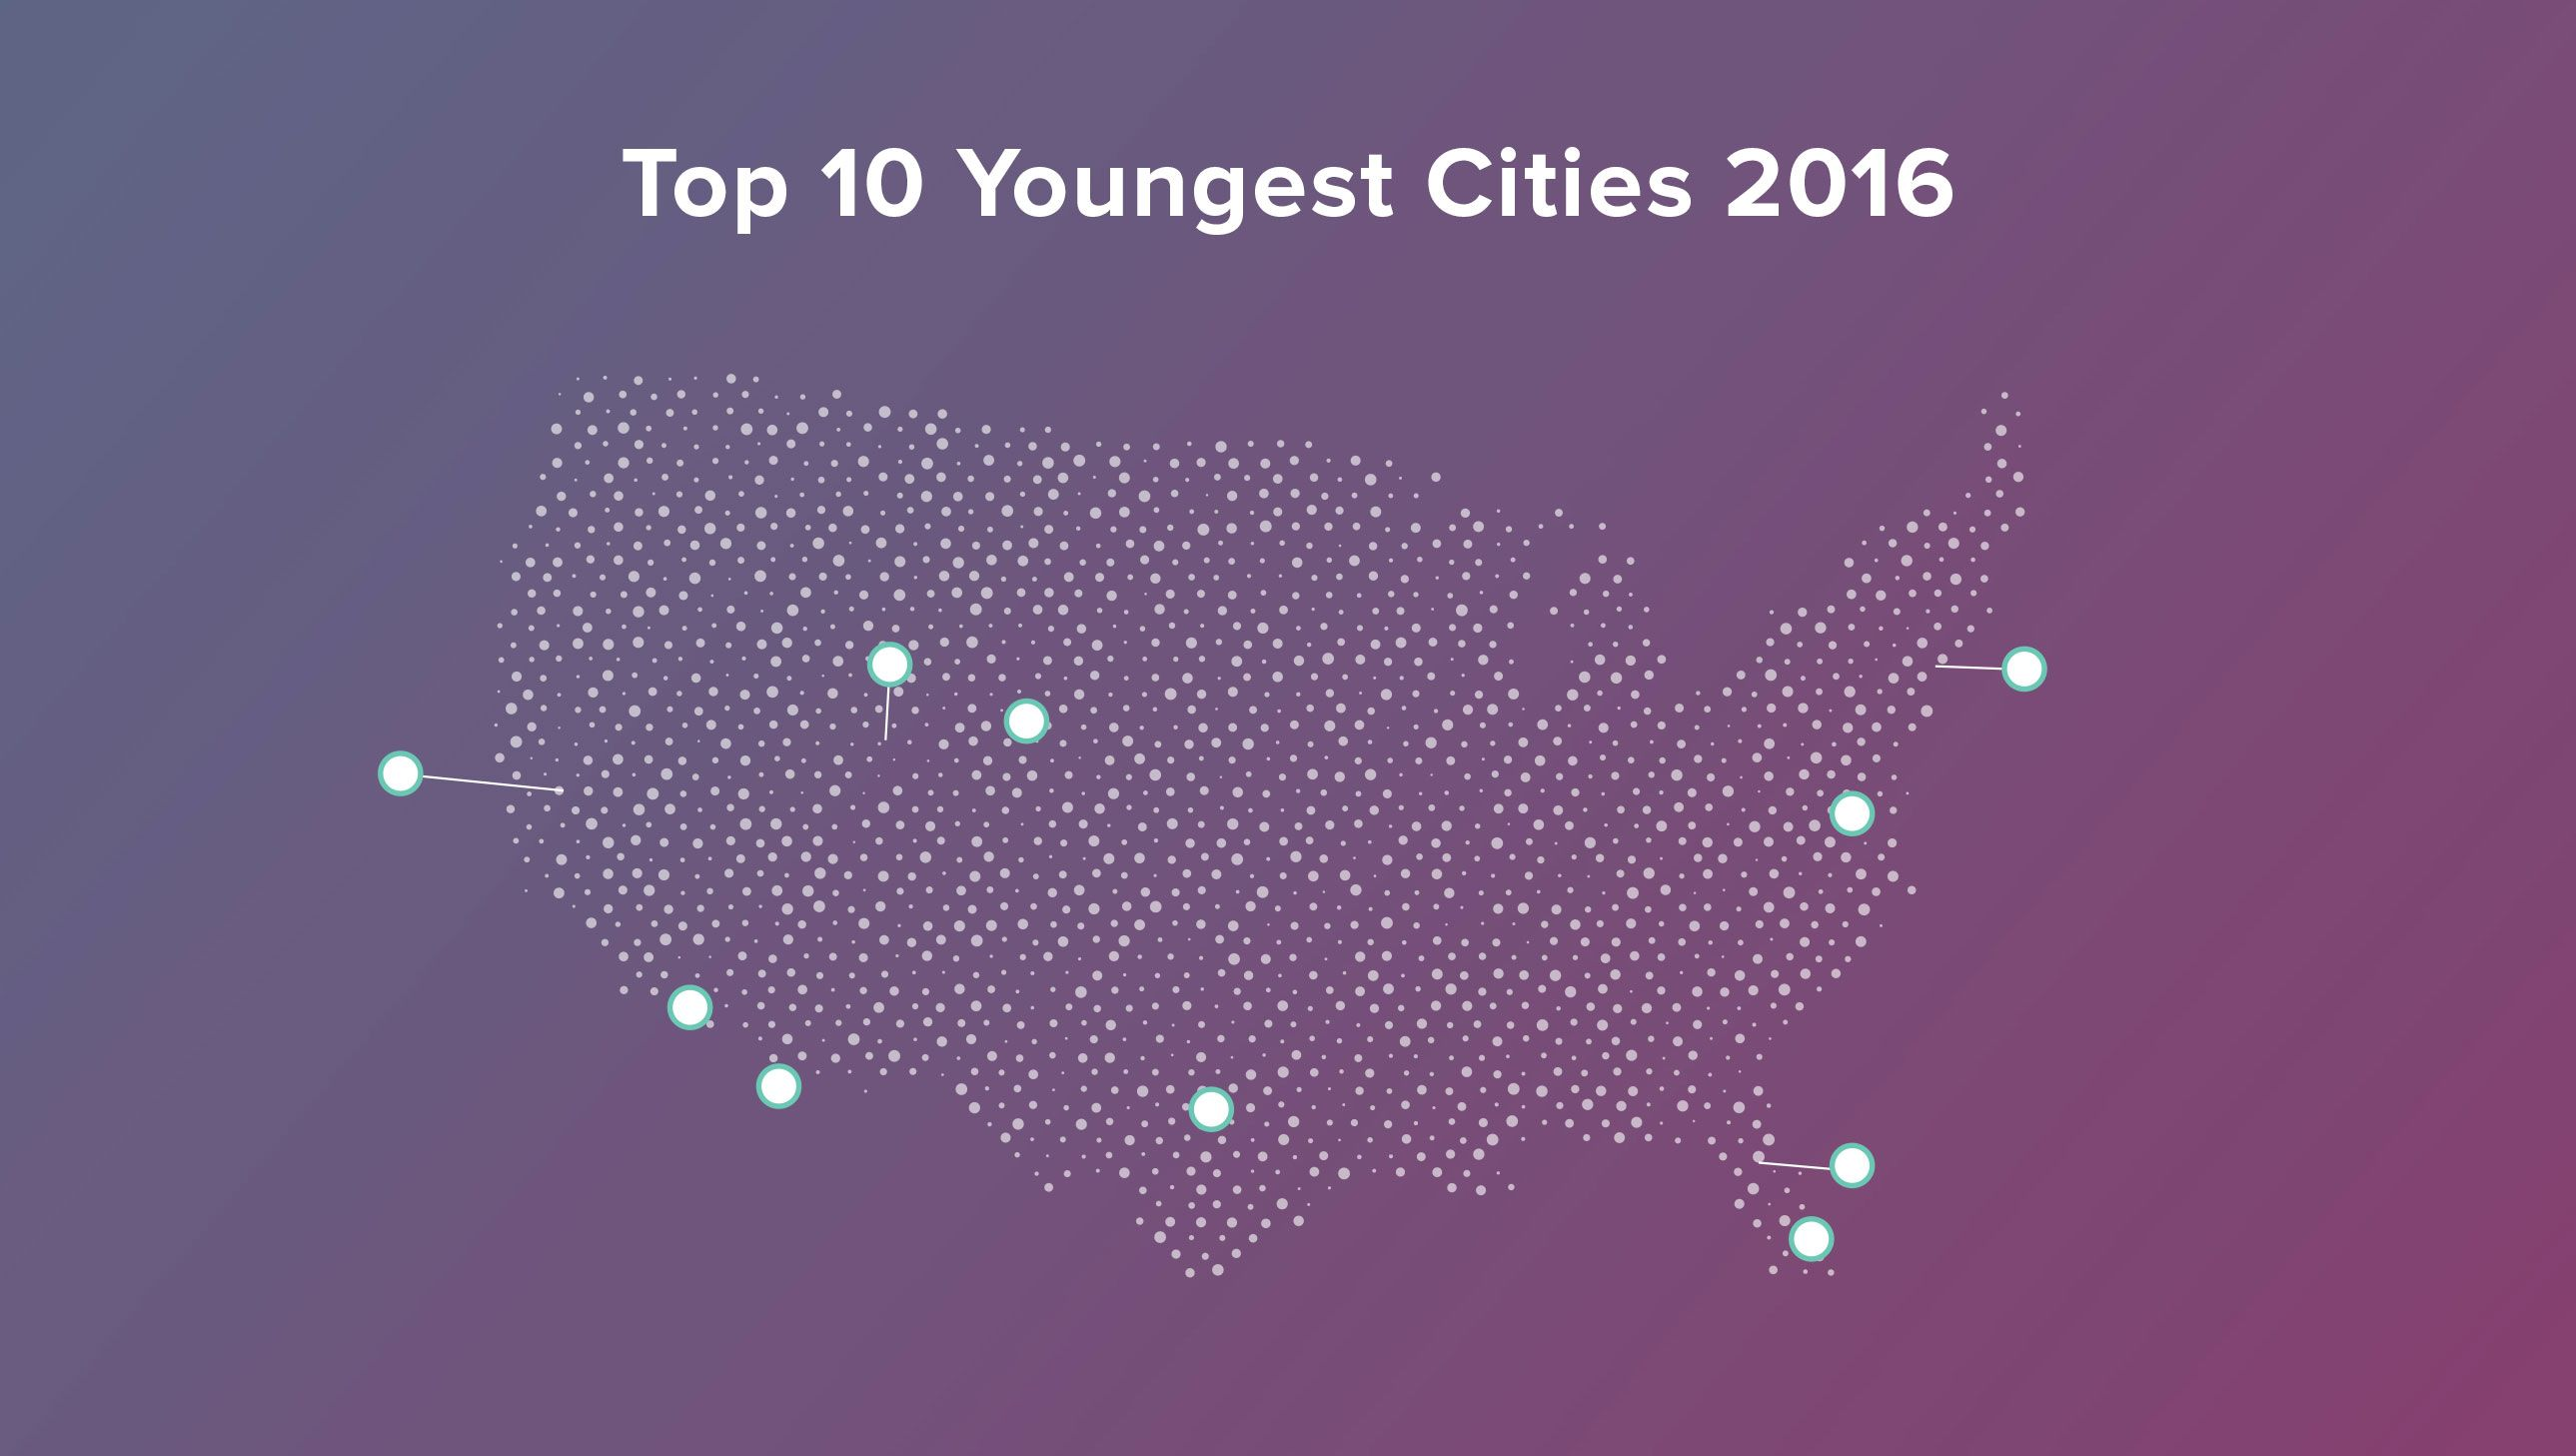 The Top 10 Youngest Cities of 2016